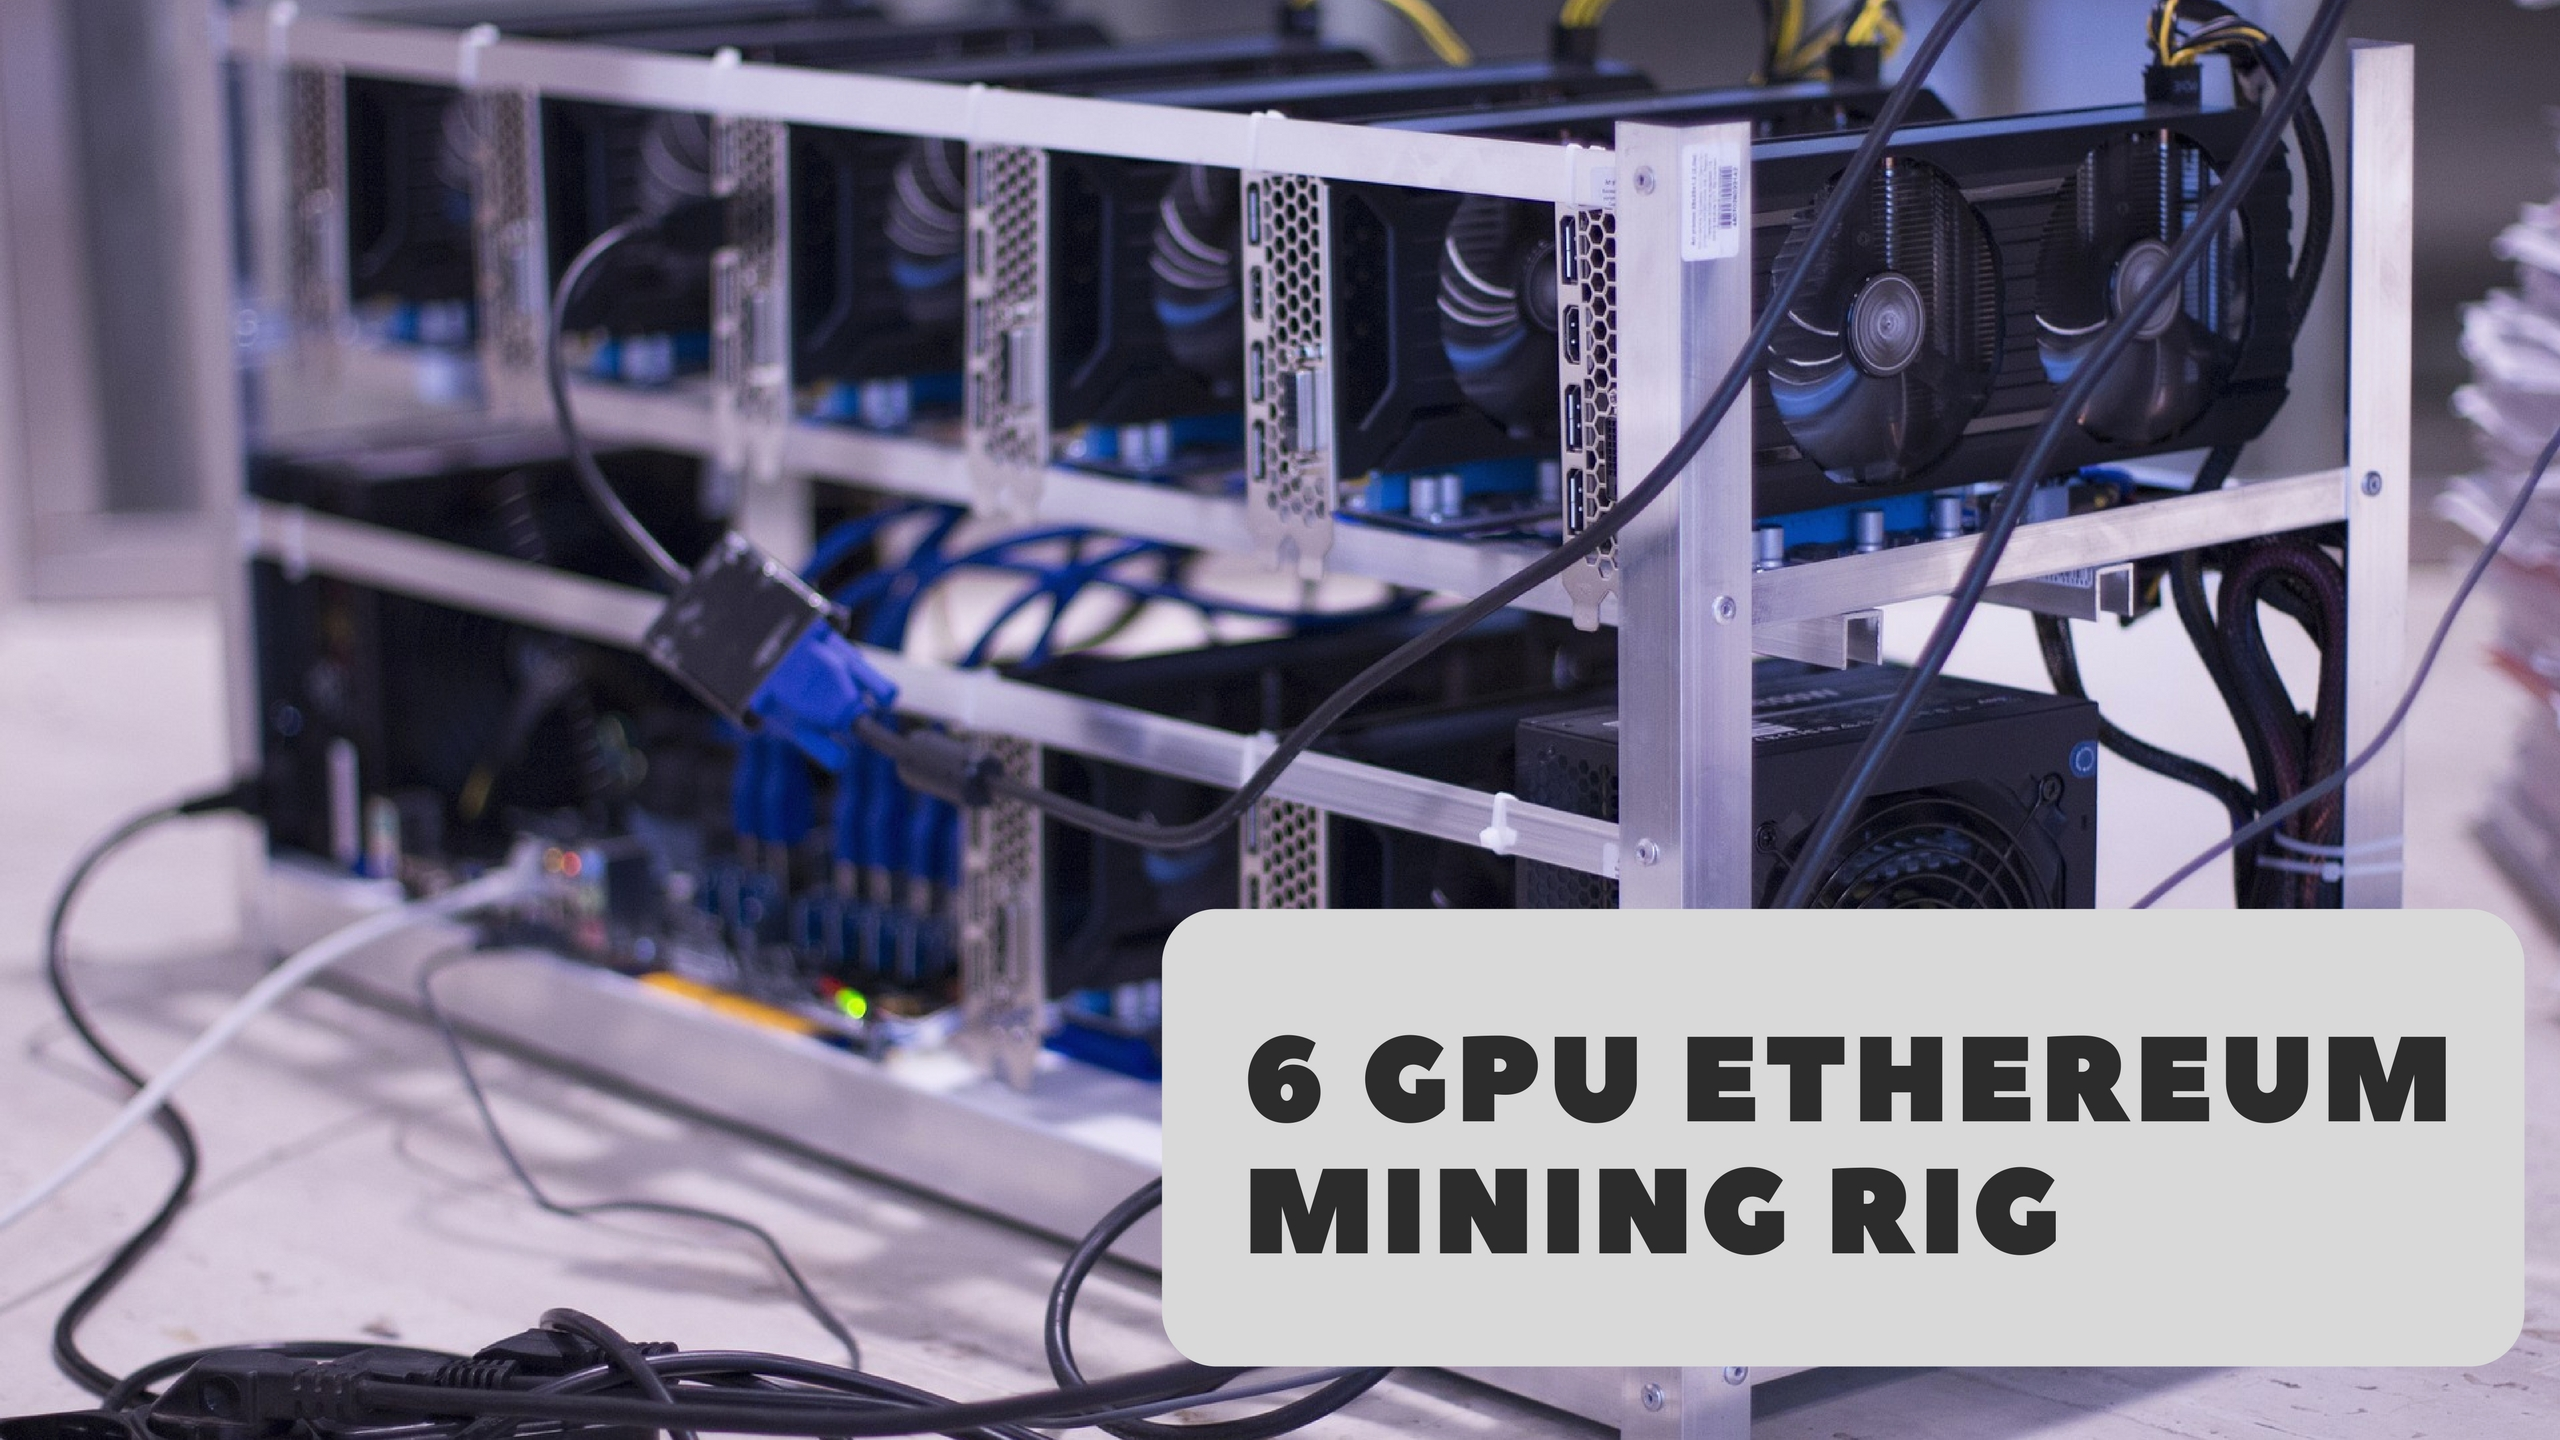 6 GPU Ethereum Mining Rig Build 2019 - Coin Suggest